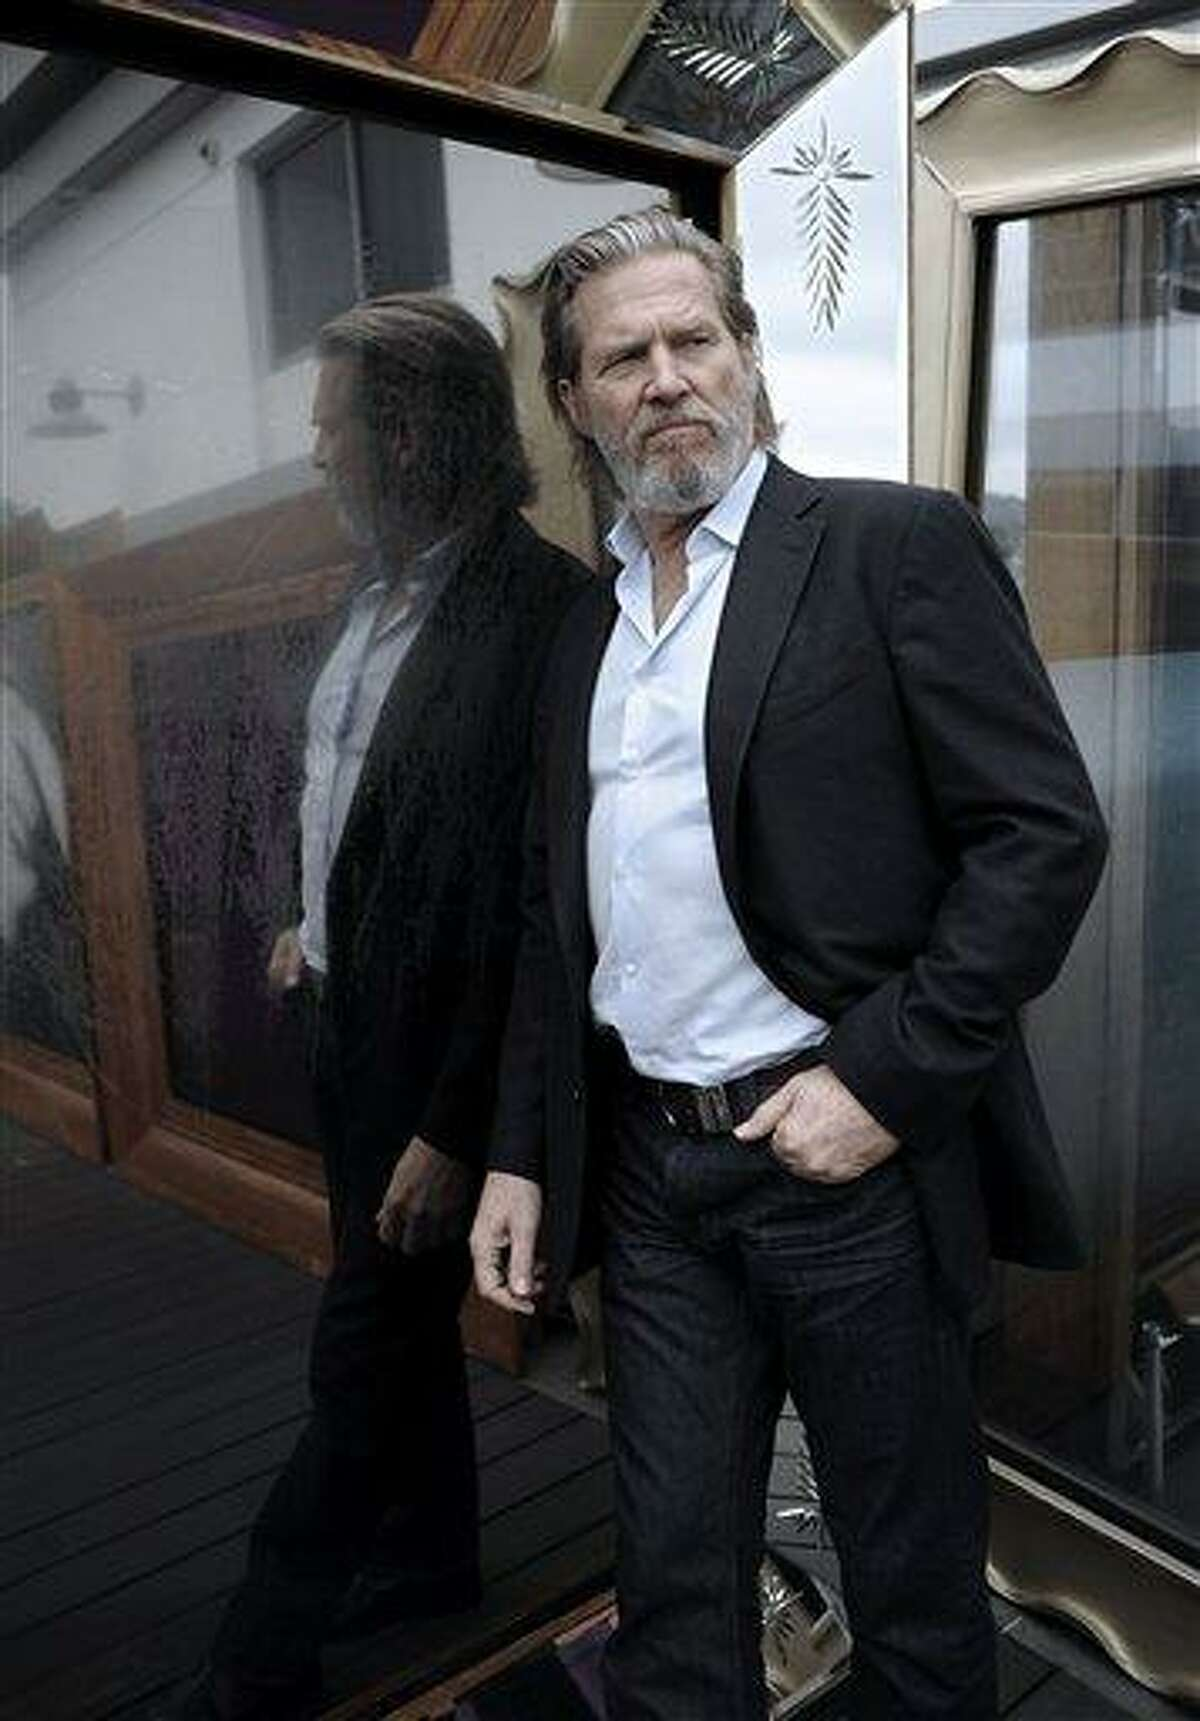 FILE - In this Nov. 19, 2010 file photo, actor Jeff Bridges poses for a portrait during the press junket for the feature film